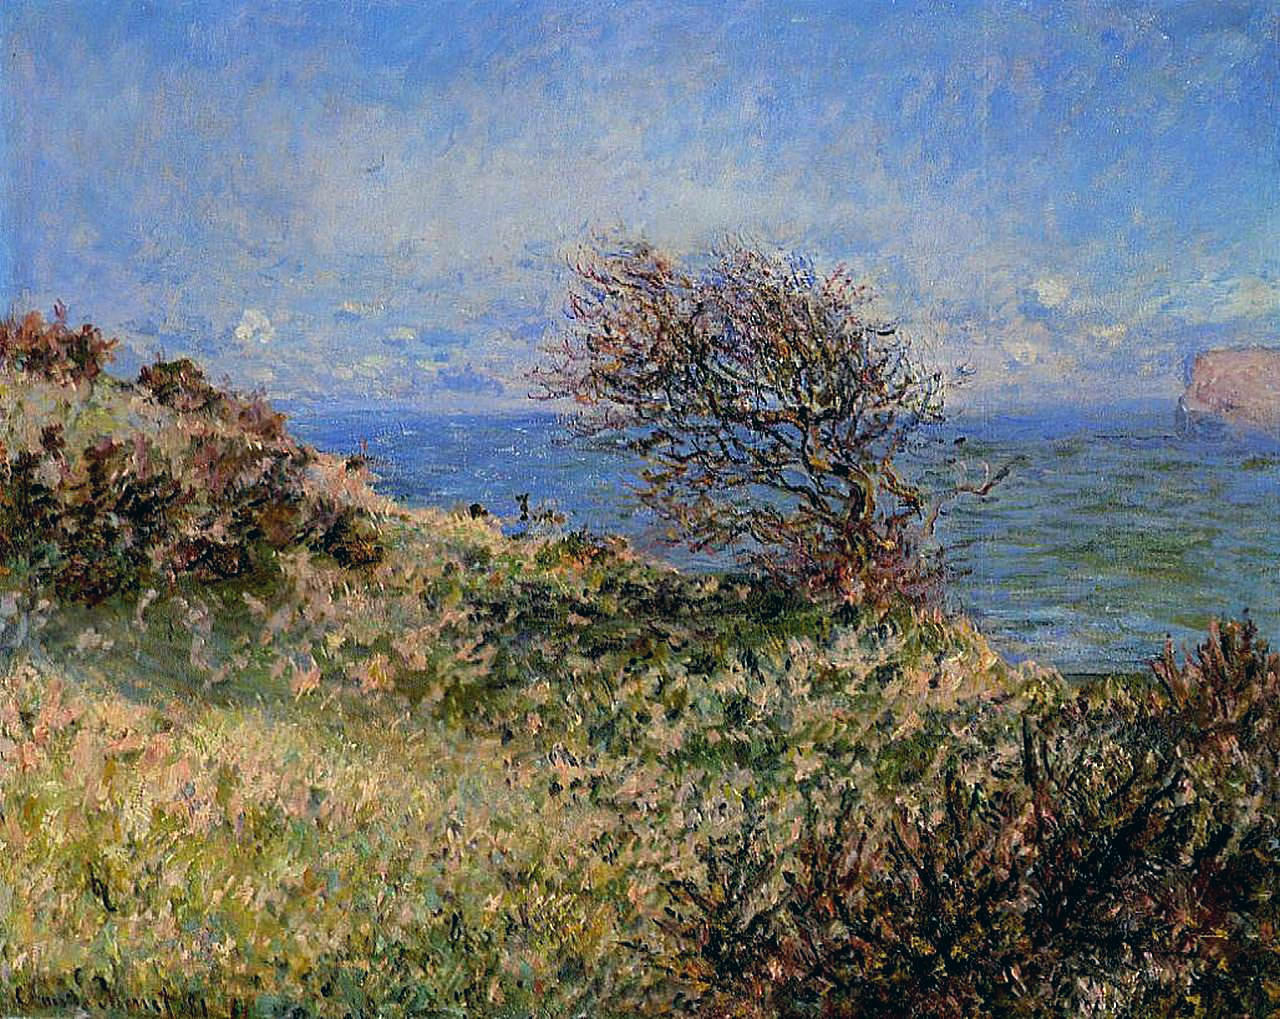 Claude Monet - On the Cliff at Fecamp 1881